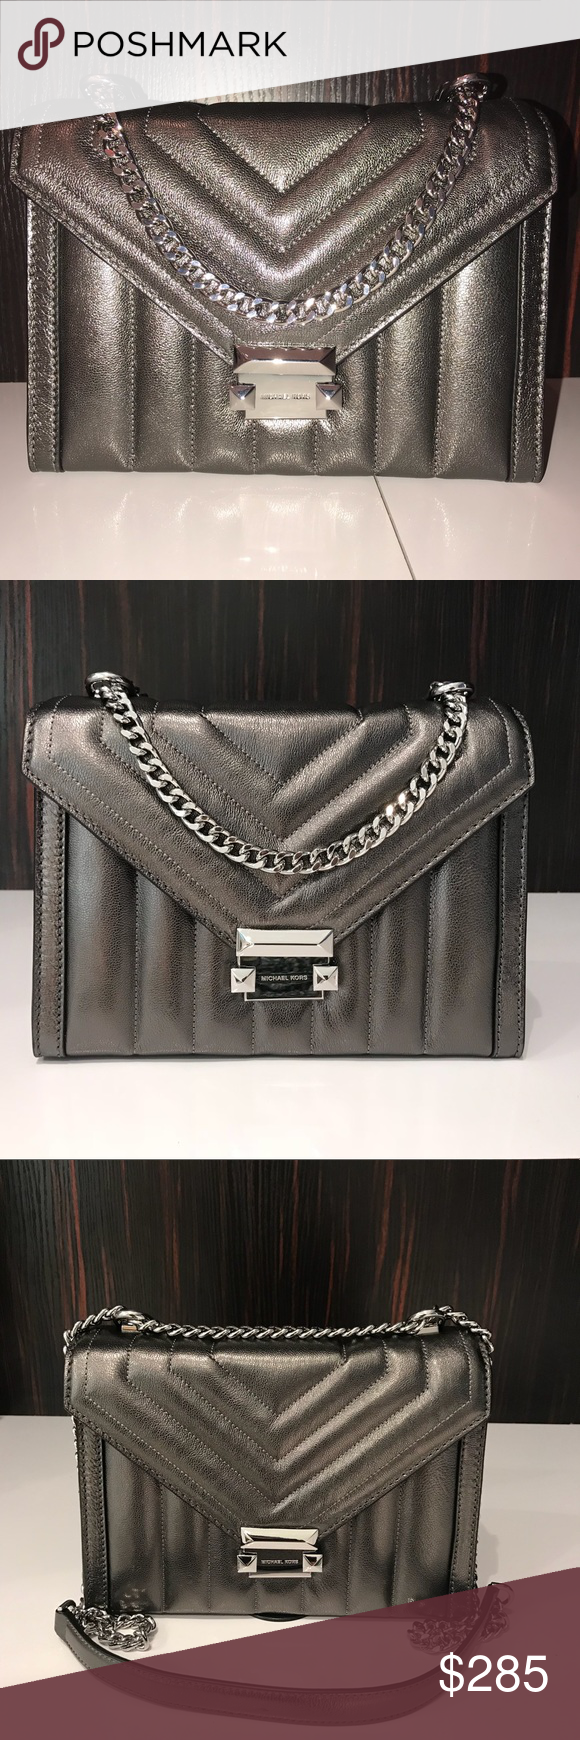 879e659a4dcd Michael Kors Whitney Quilted Leather Shoulder Bag Whitney Large Quilted  Leather Convertible Shoulder Bag Whitney shoulder bag is designed in  quilted ...